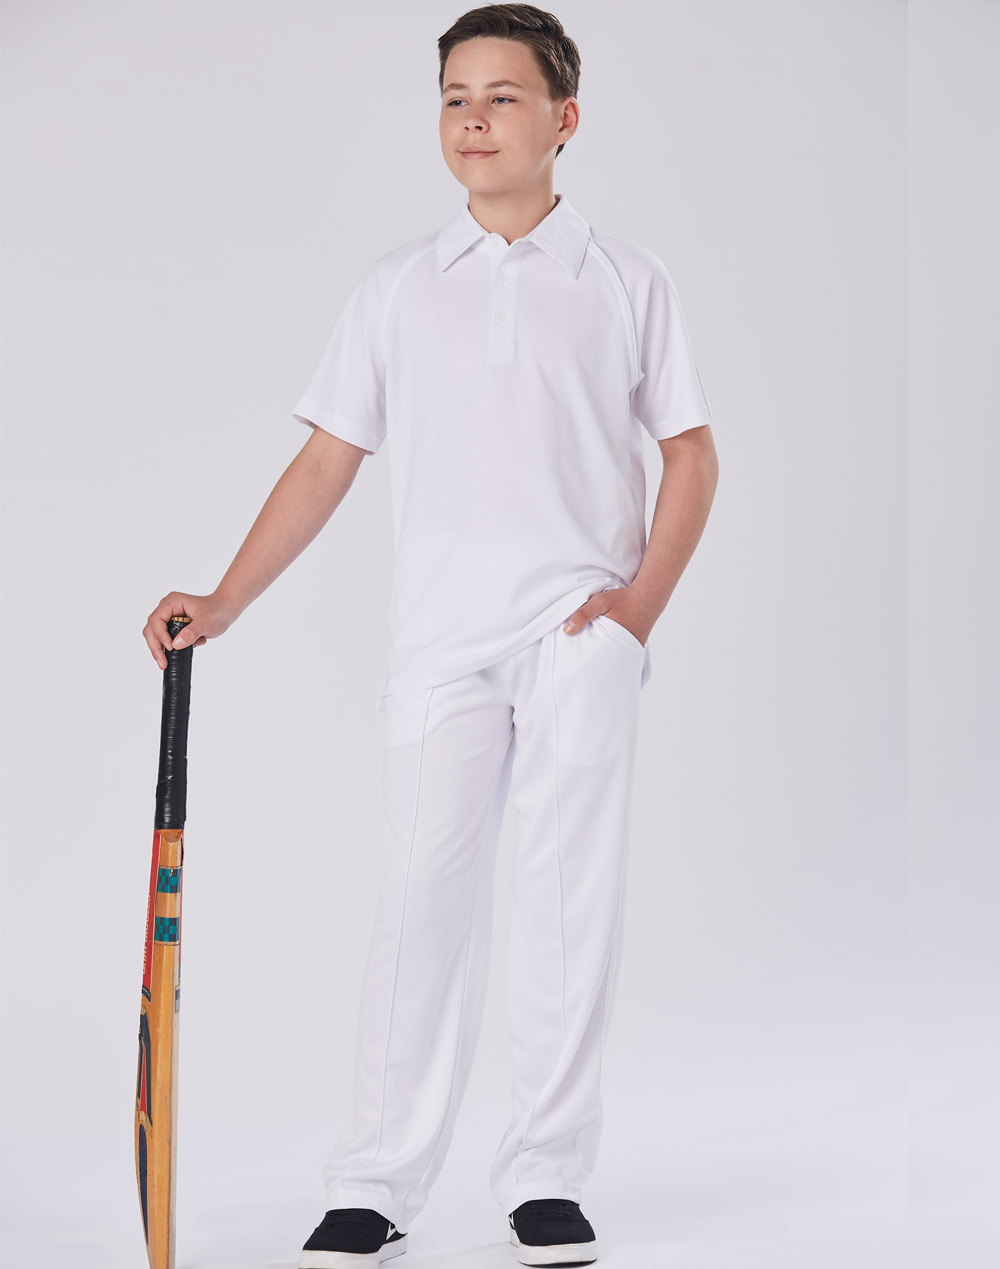 PS29K CRICKET POLO Short Sleeve Kids'